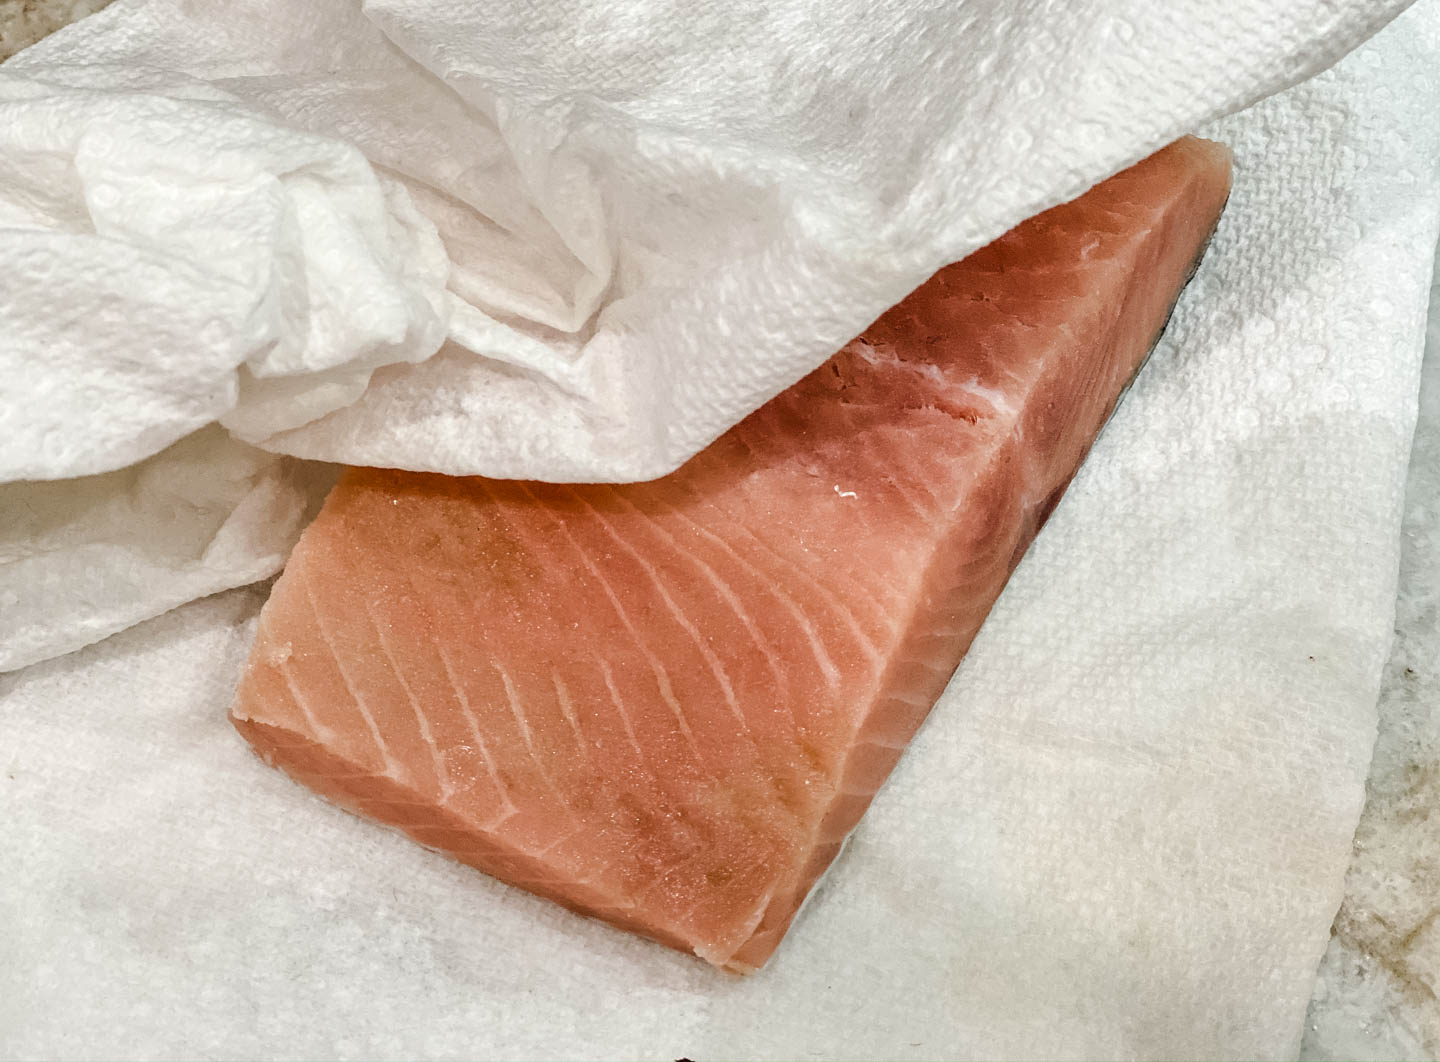 Raw salmon sitting on paper towels.